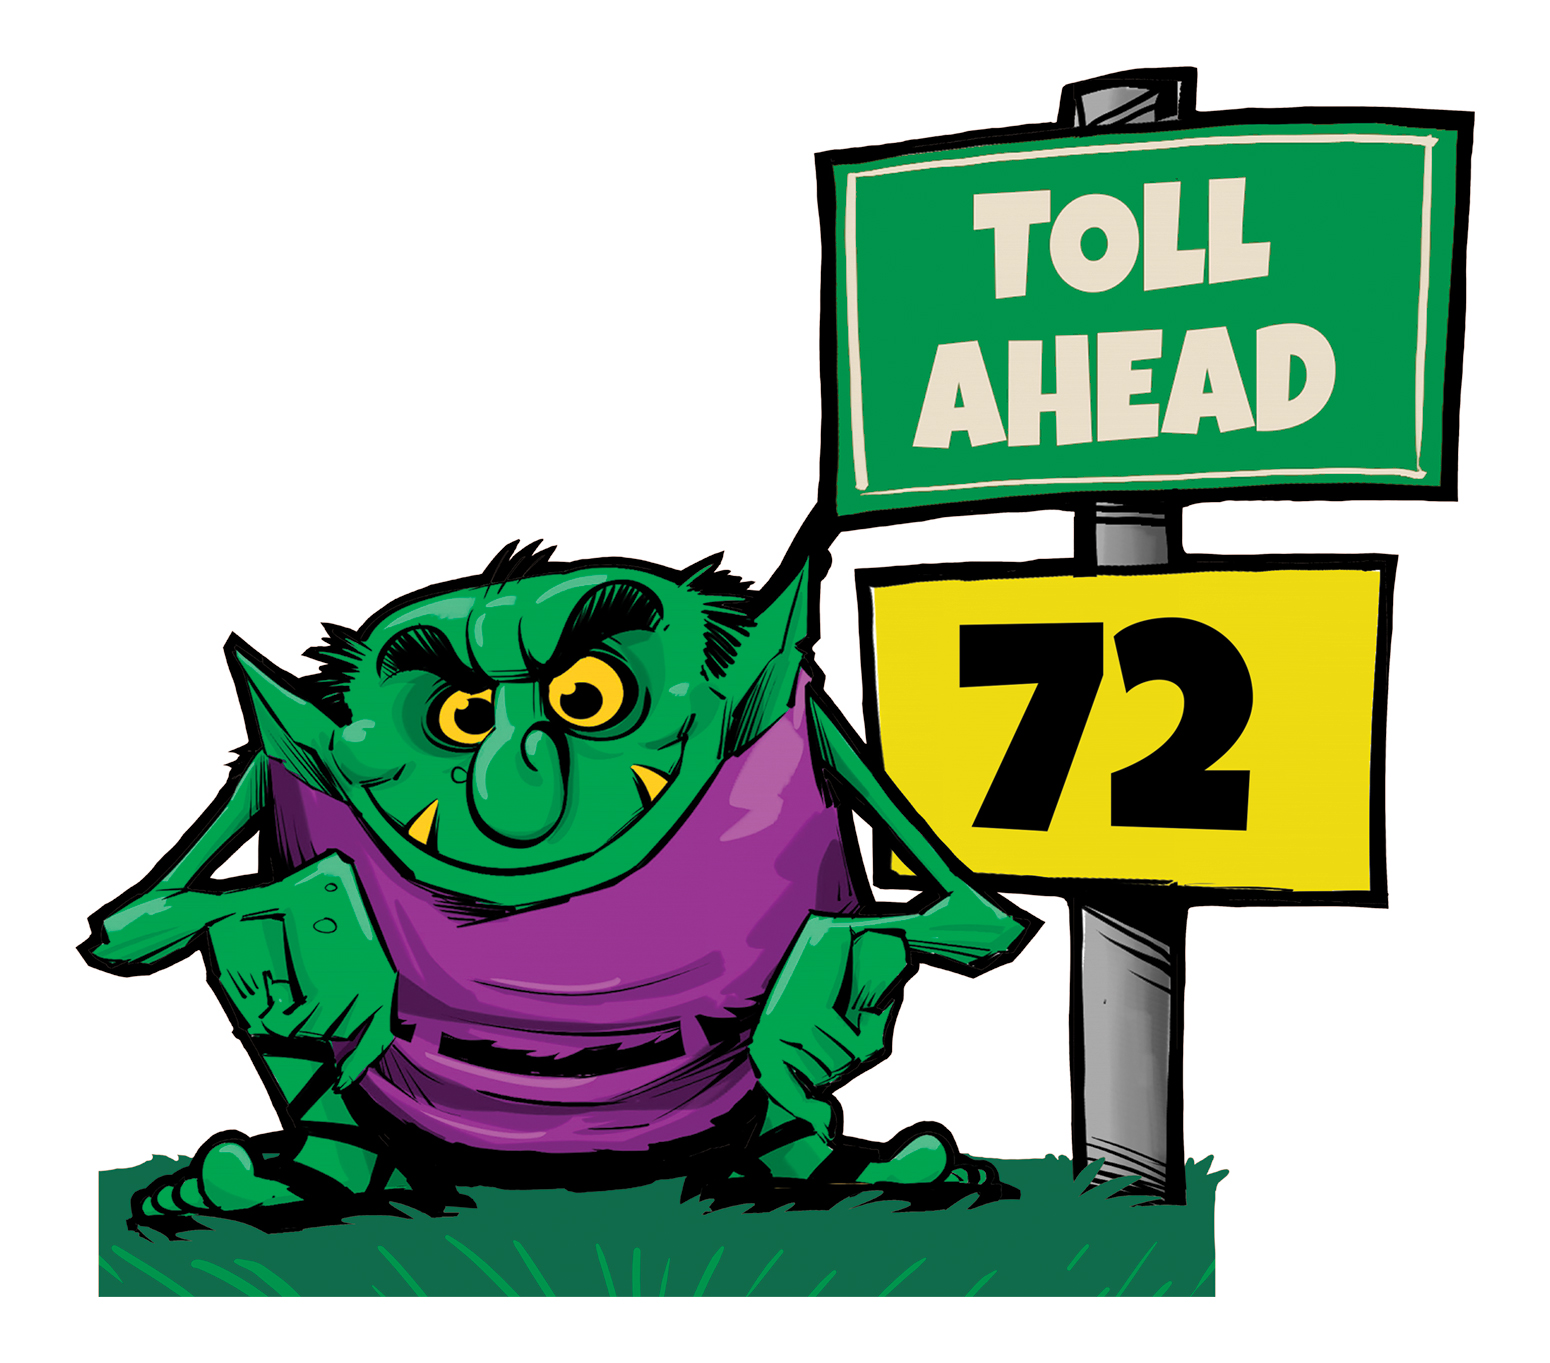 Fox 61: Toll Troll parks itself at the capitol building